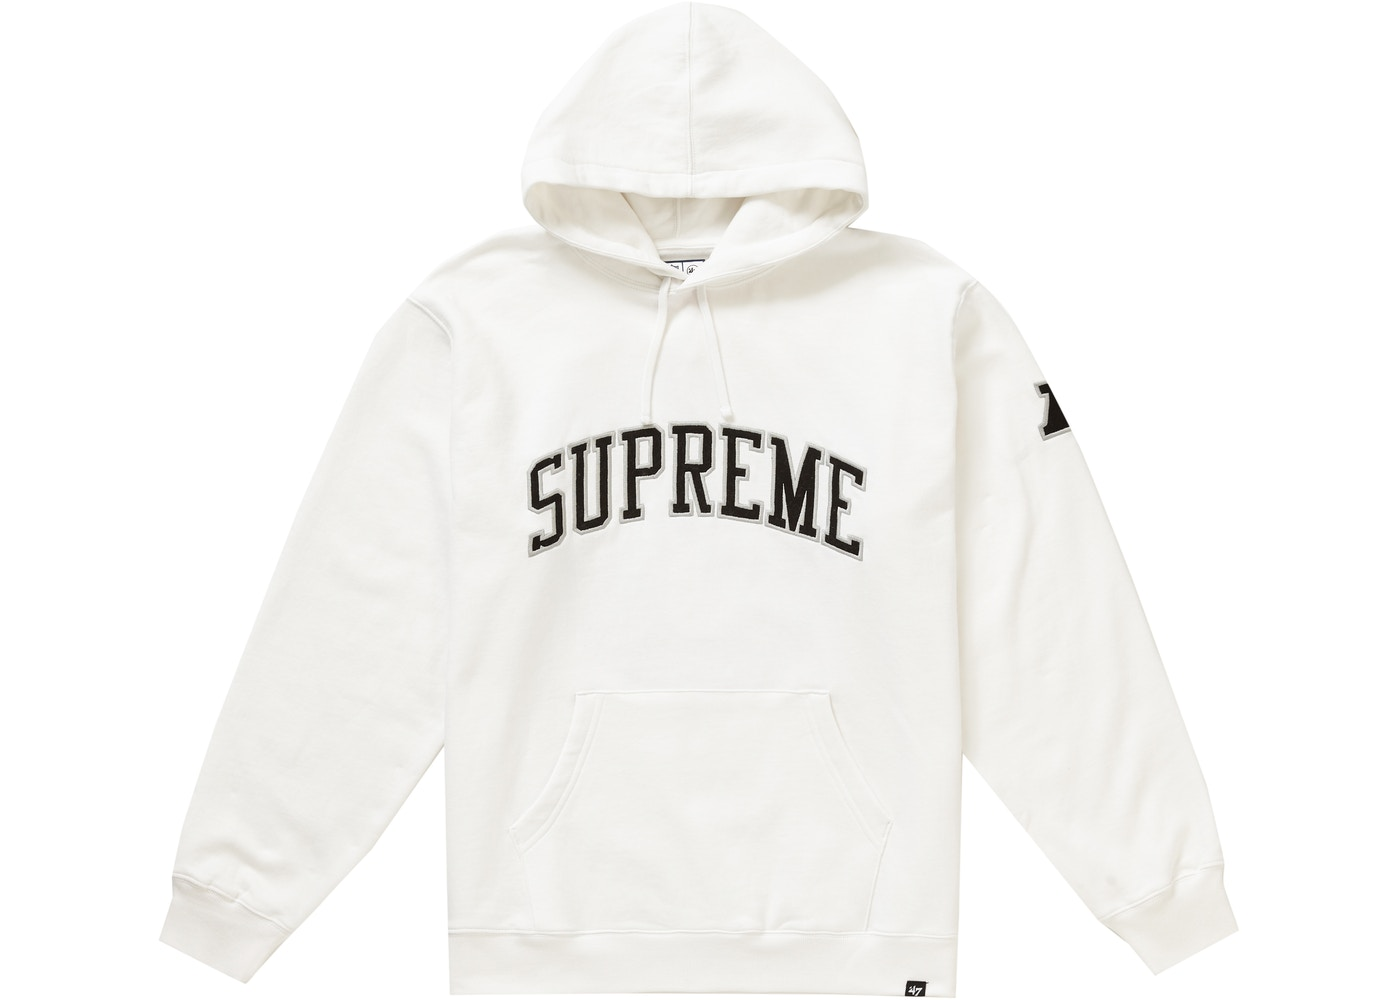 buy online be5b7 f74f1 Supreme NFL x Raiders x '47 Hooded Sweatshirt White